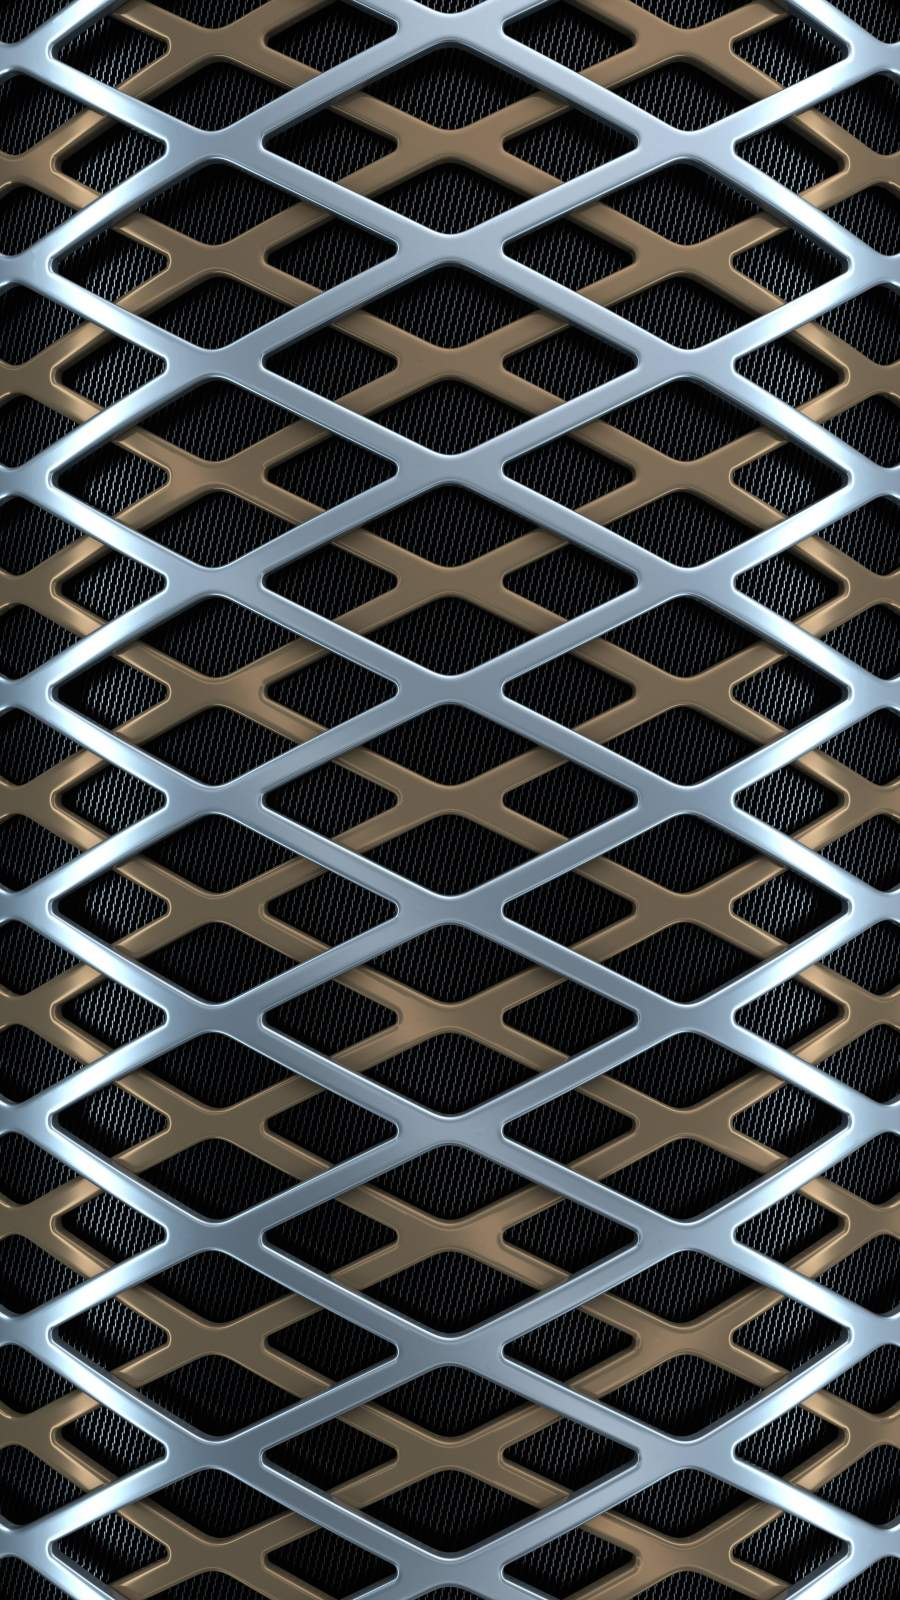 Metalic Texture iPhone Wallpaper